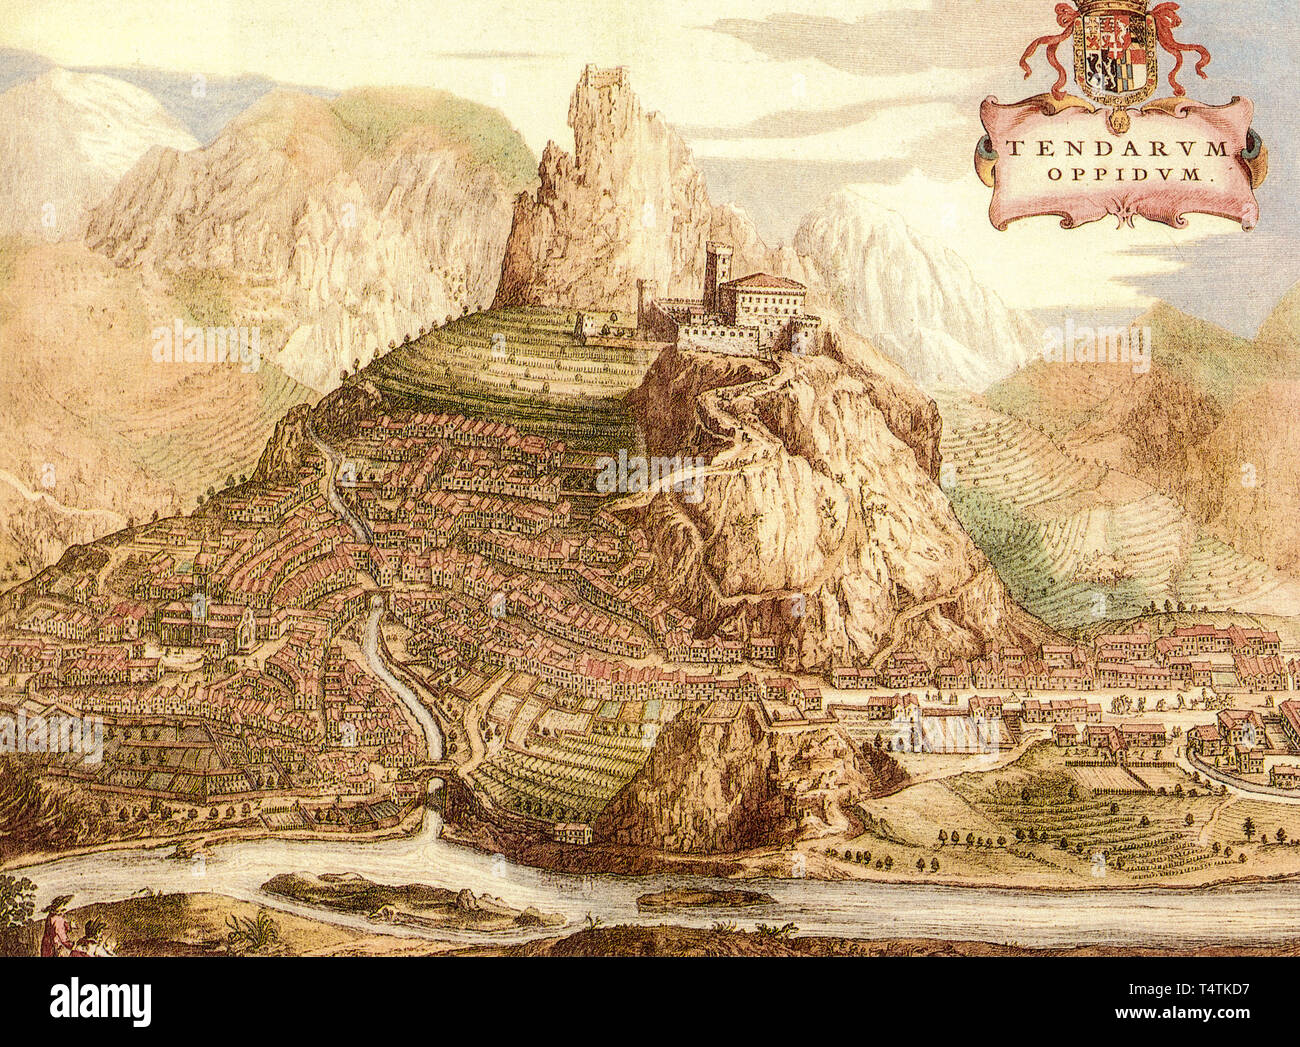 Colle di Tenda and Tenda Valley with fortress in a ancient print of the Theatrum Sabaudiae - Stock Image